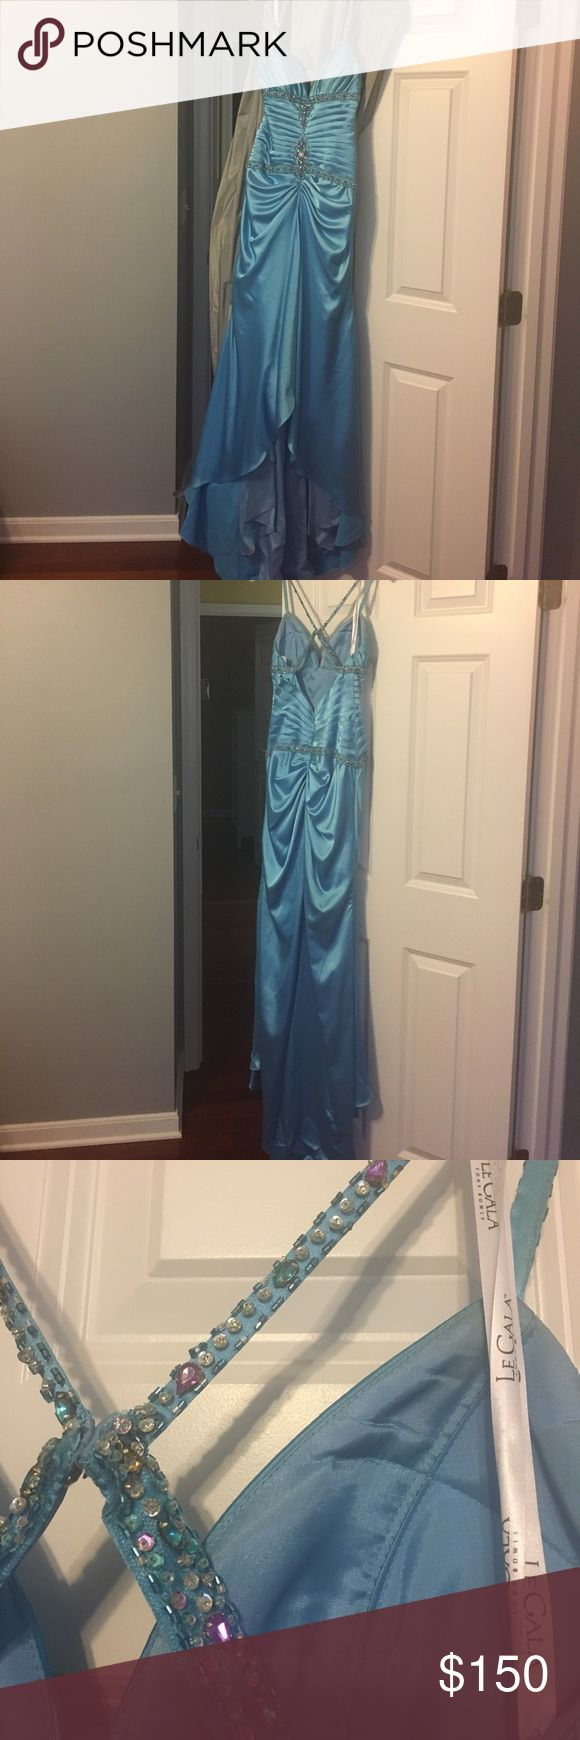 Tony Bowls Le Gala Prom Dress GORGEOUS GORGEOUS GORGEOUS!!!! High to low front, perfect beading. Tony Bowls Dresses Prom